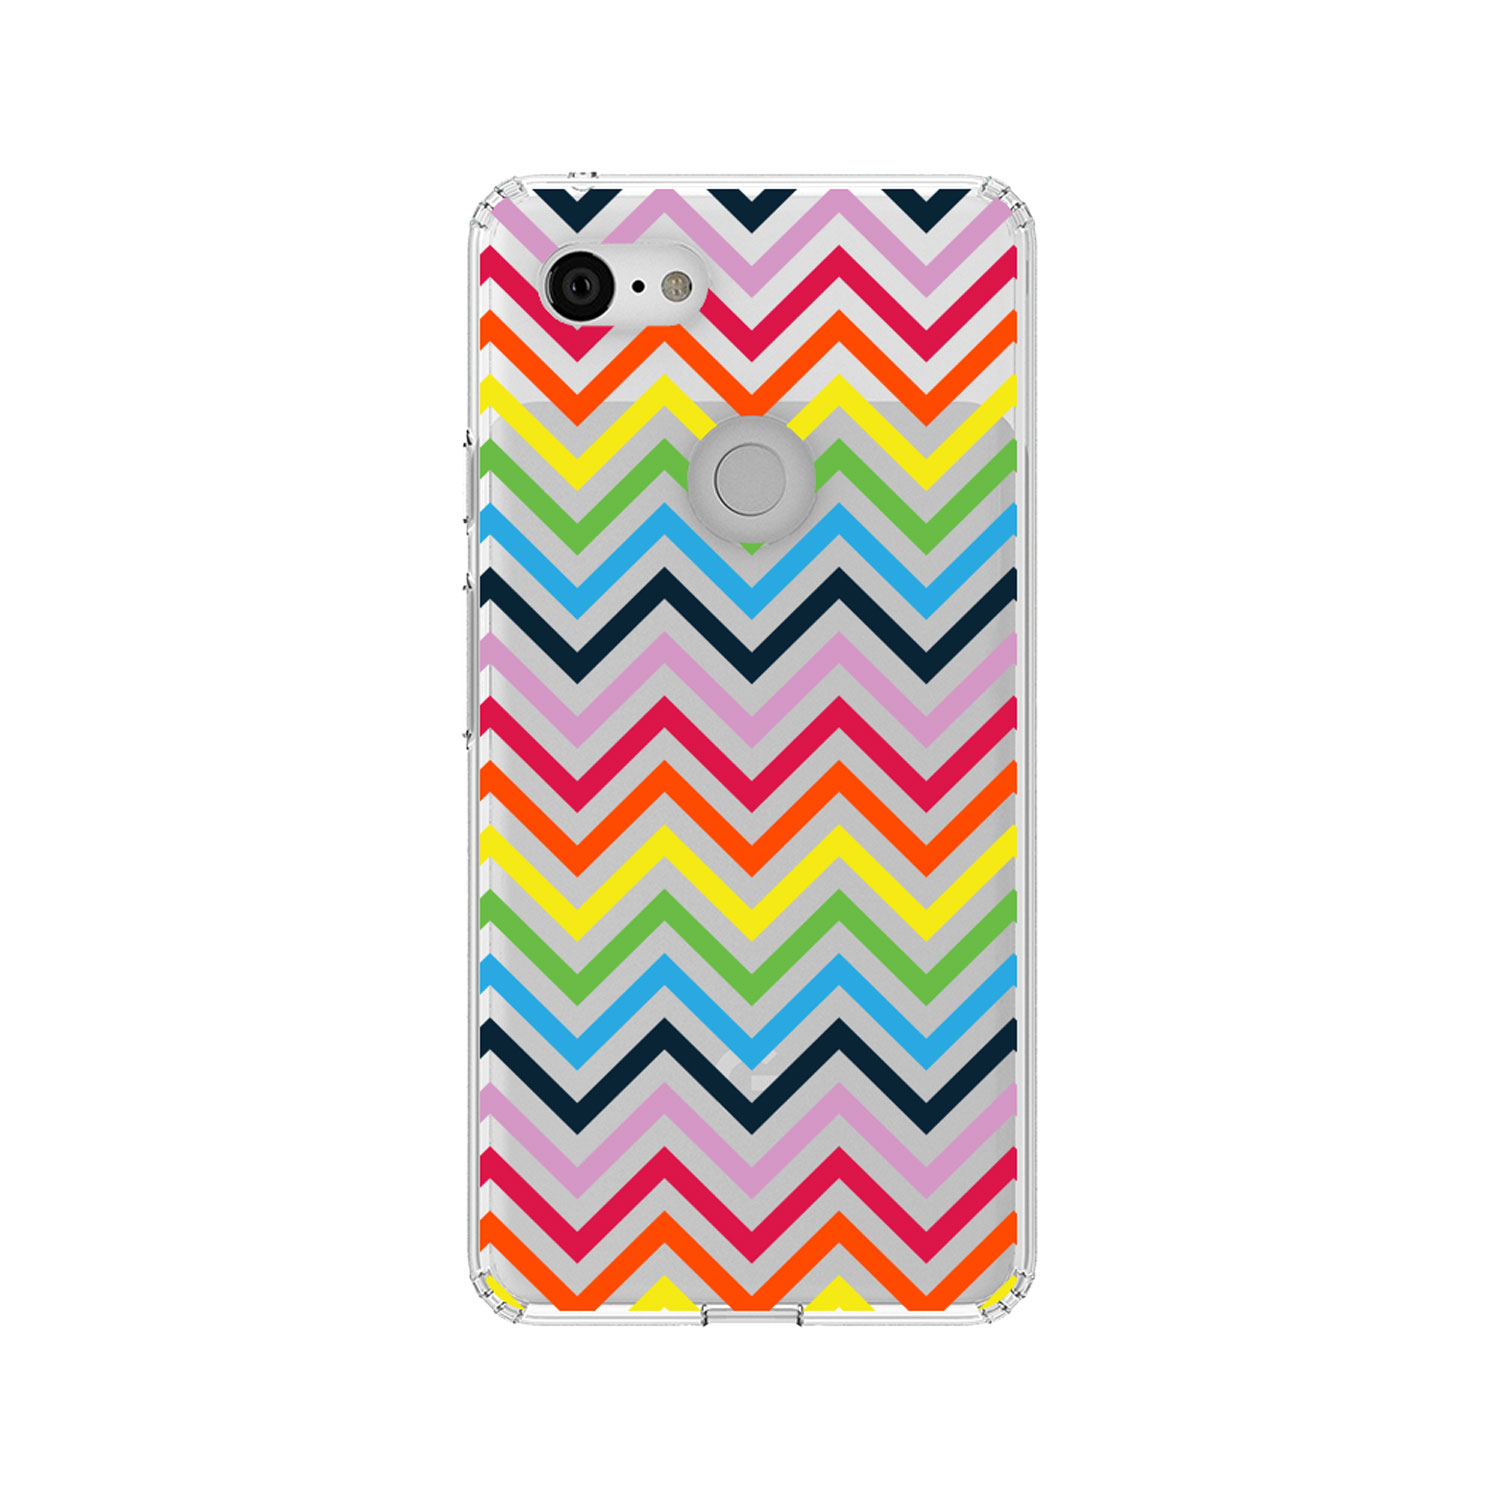 """DistinctInk Clear Shockproof Hybrid Case for Google Pixel 3 (5.5"""" Screen) - TPU Bumper, Acrylic Back, Tempered Glass Screen Protector - Rainbow Chevron"""